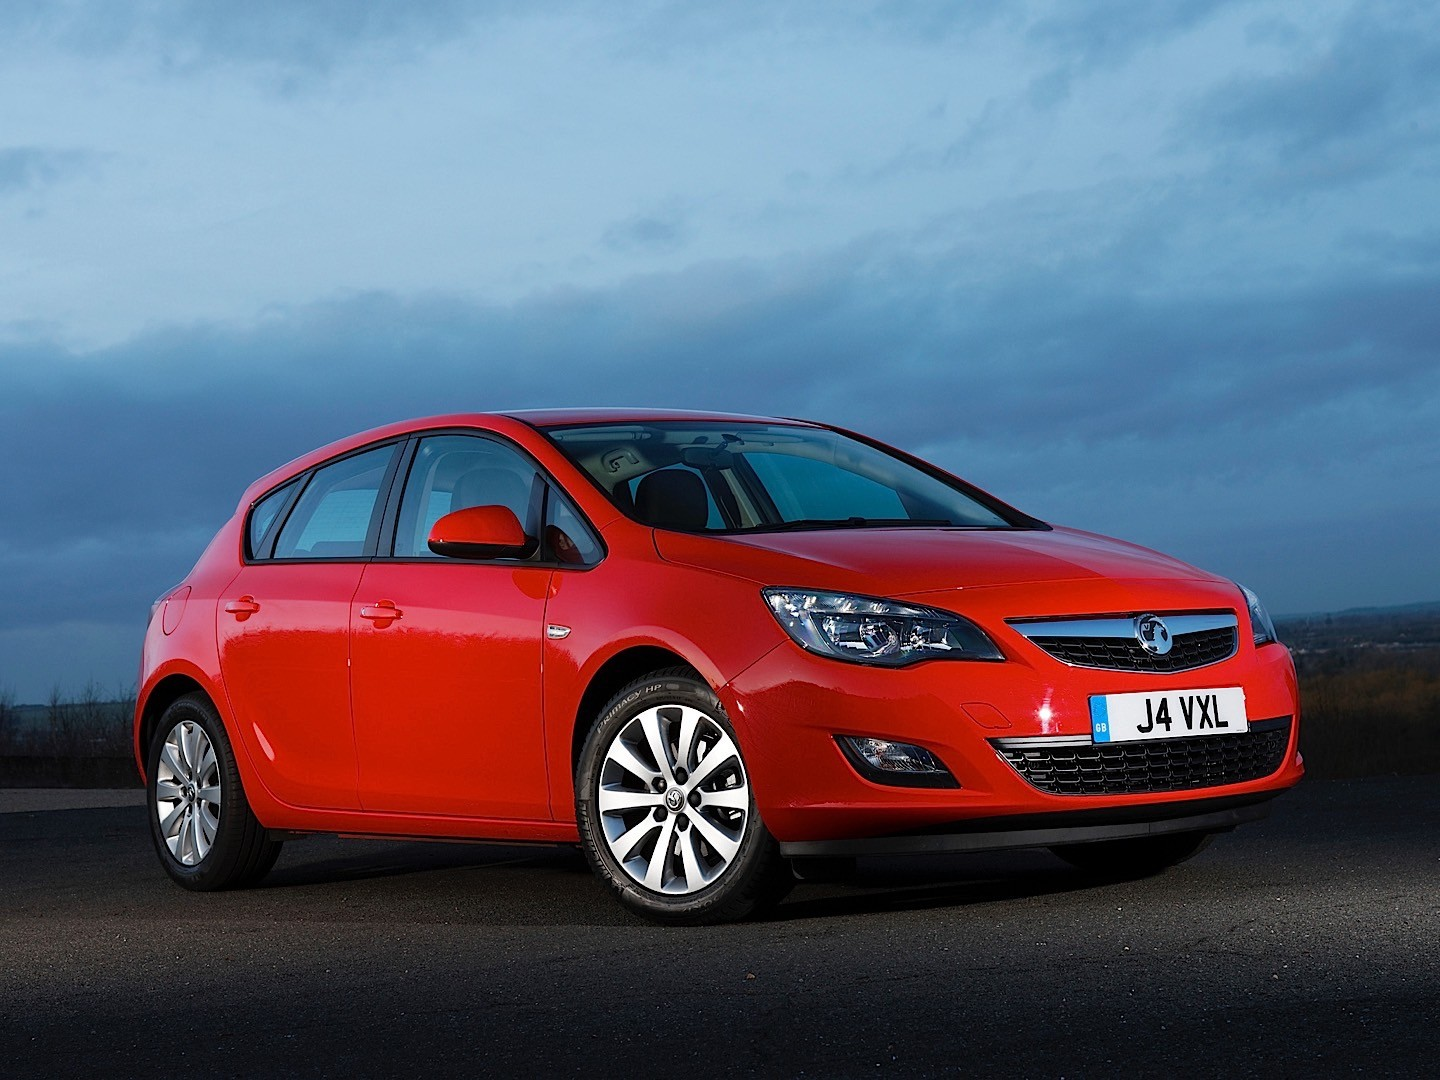 vauxhall astra hatchback specs 2009 2010 2011 2012 2013 2014 2015 autoevolution. Black Bedroom Furniture Sets. Home Design Ideas